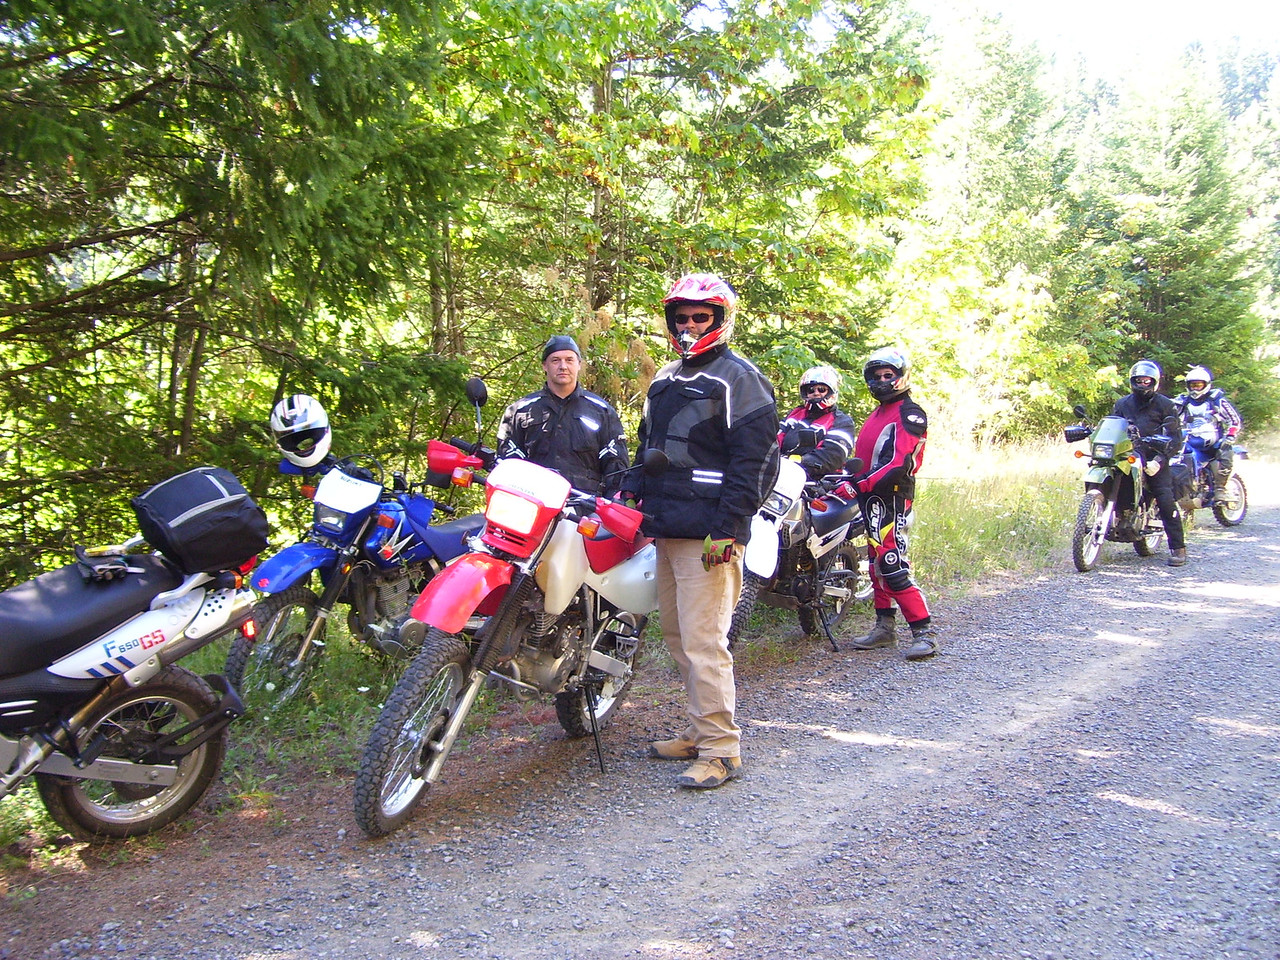 A few days later we went to the Dual Sport Rally at the Gorge. This is Mondays ride to Red Mt. and Trout Lake, 137 miles.